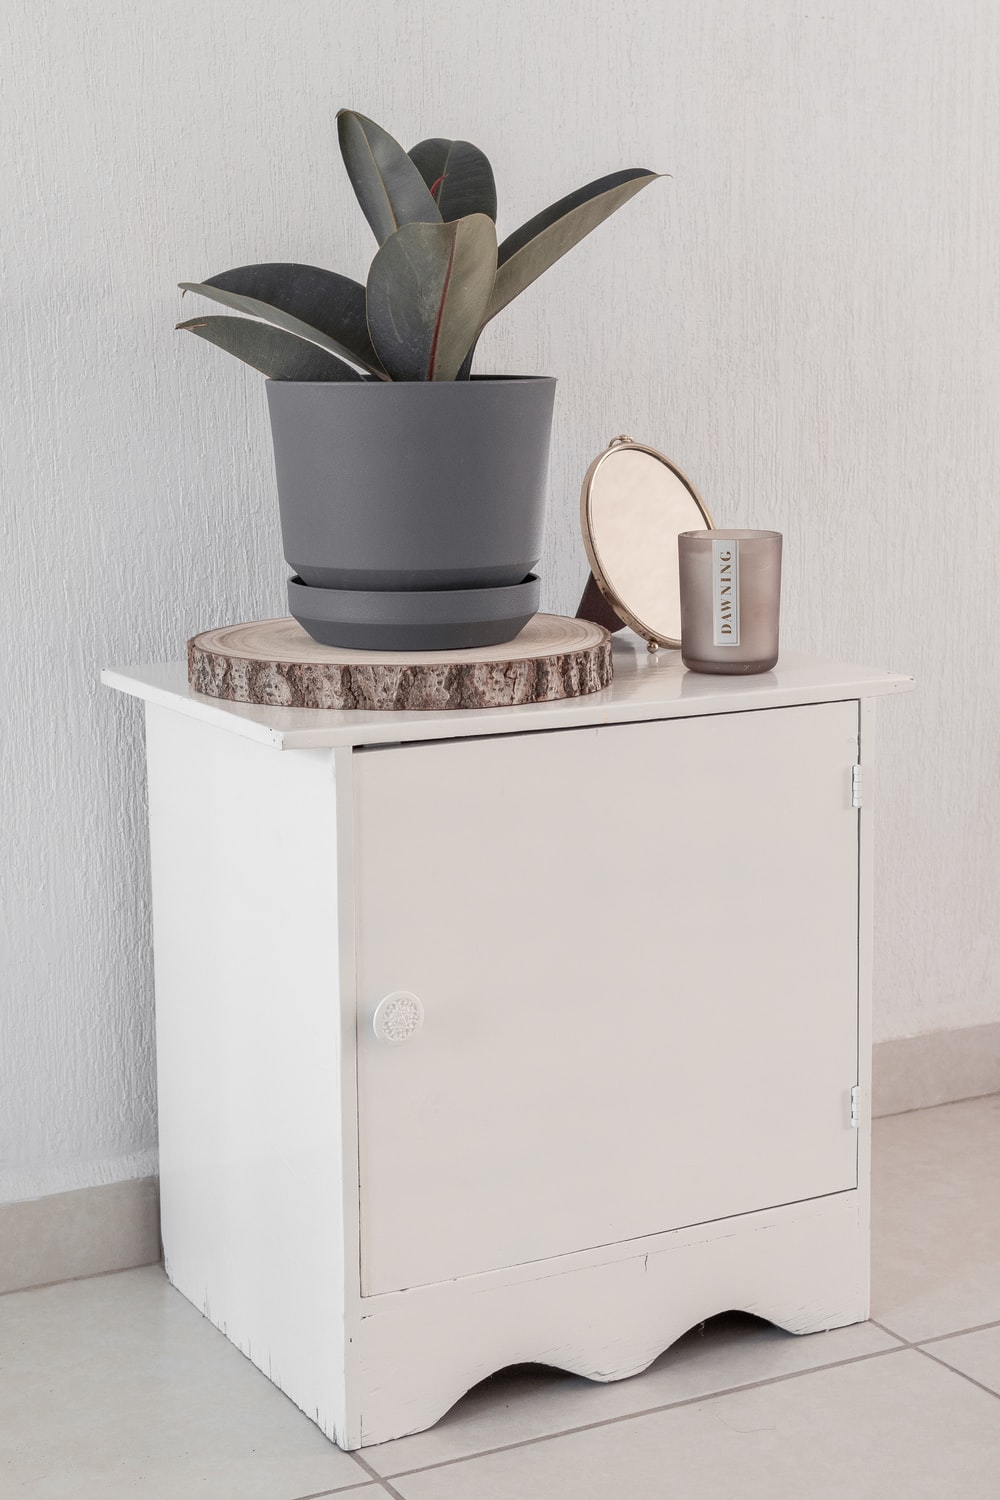 white and brown ceramic mug on white wooden cabinet